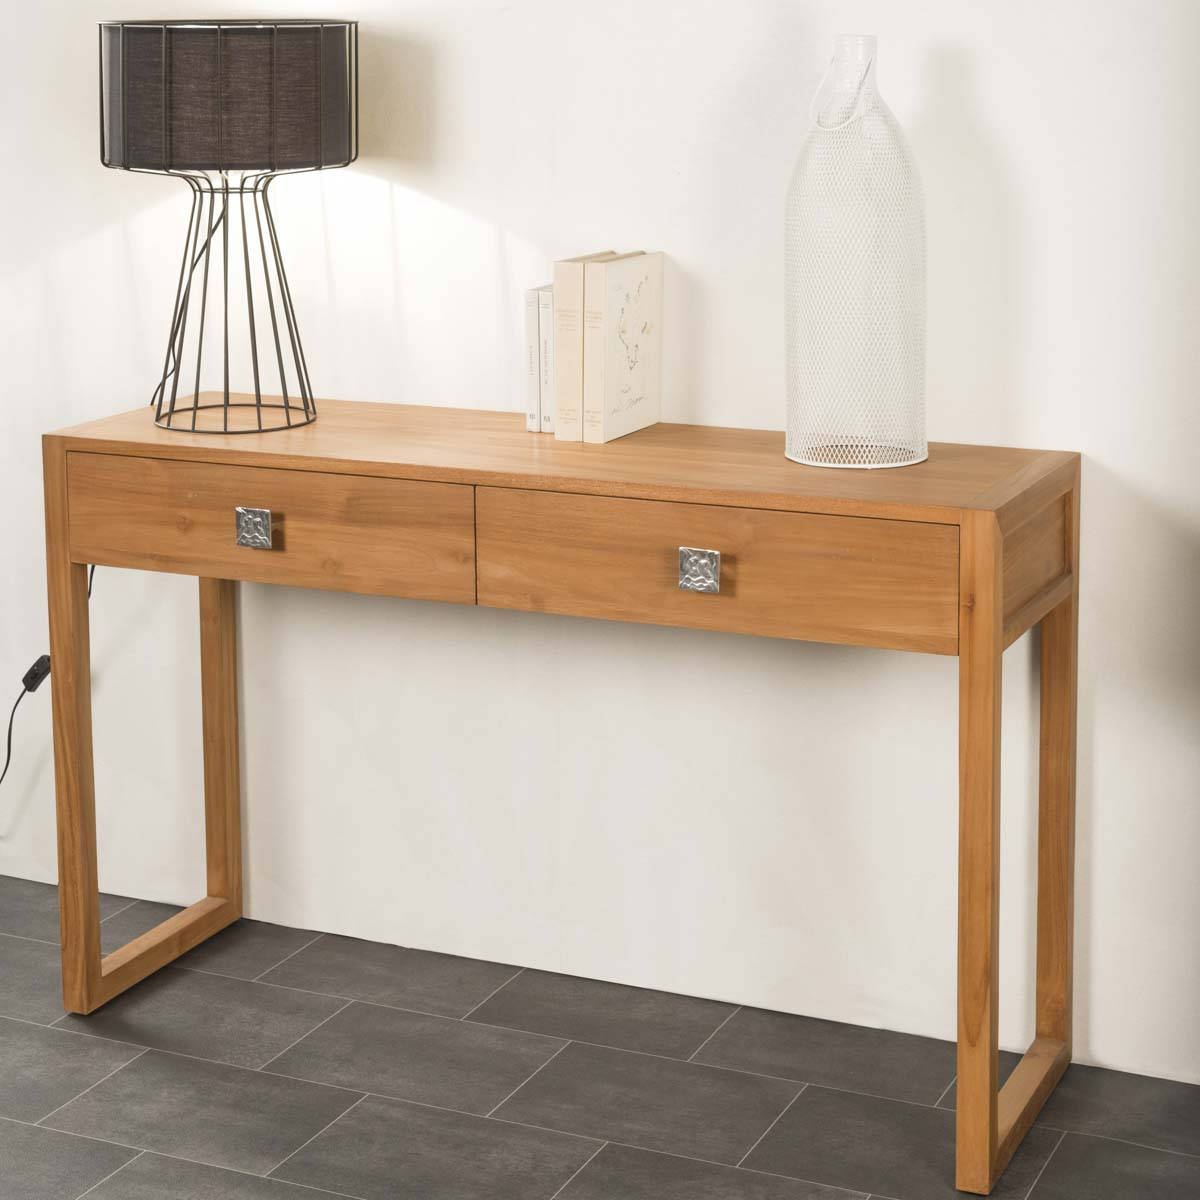 Console de salon en bois de teck massif th a rectangle for Console pour vestibule